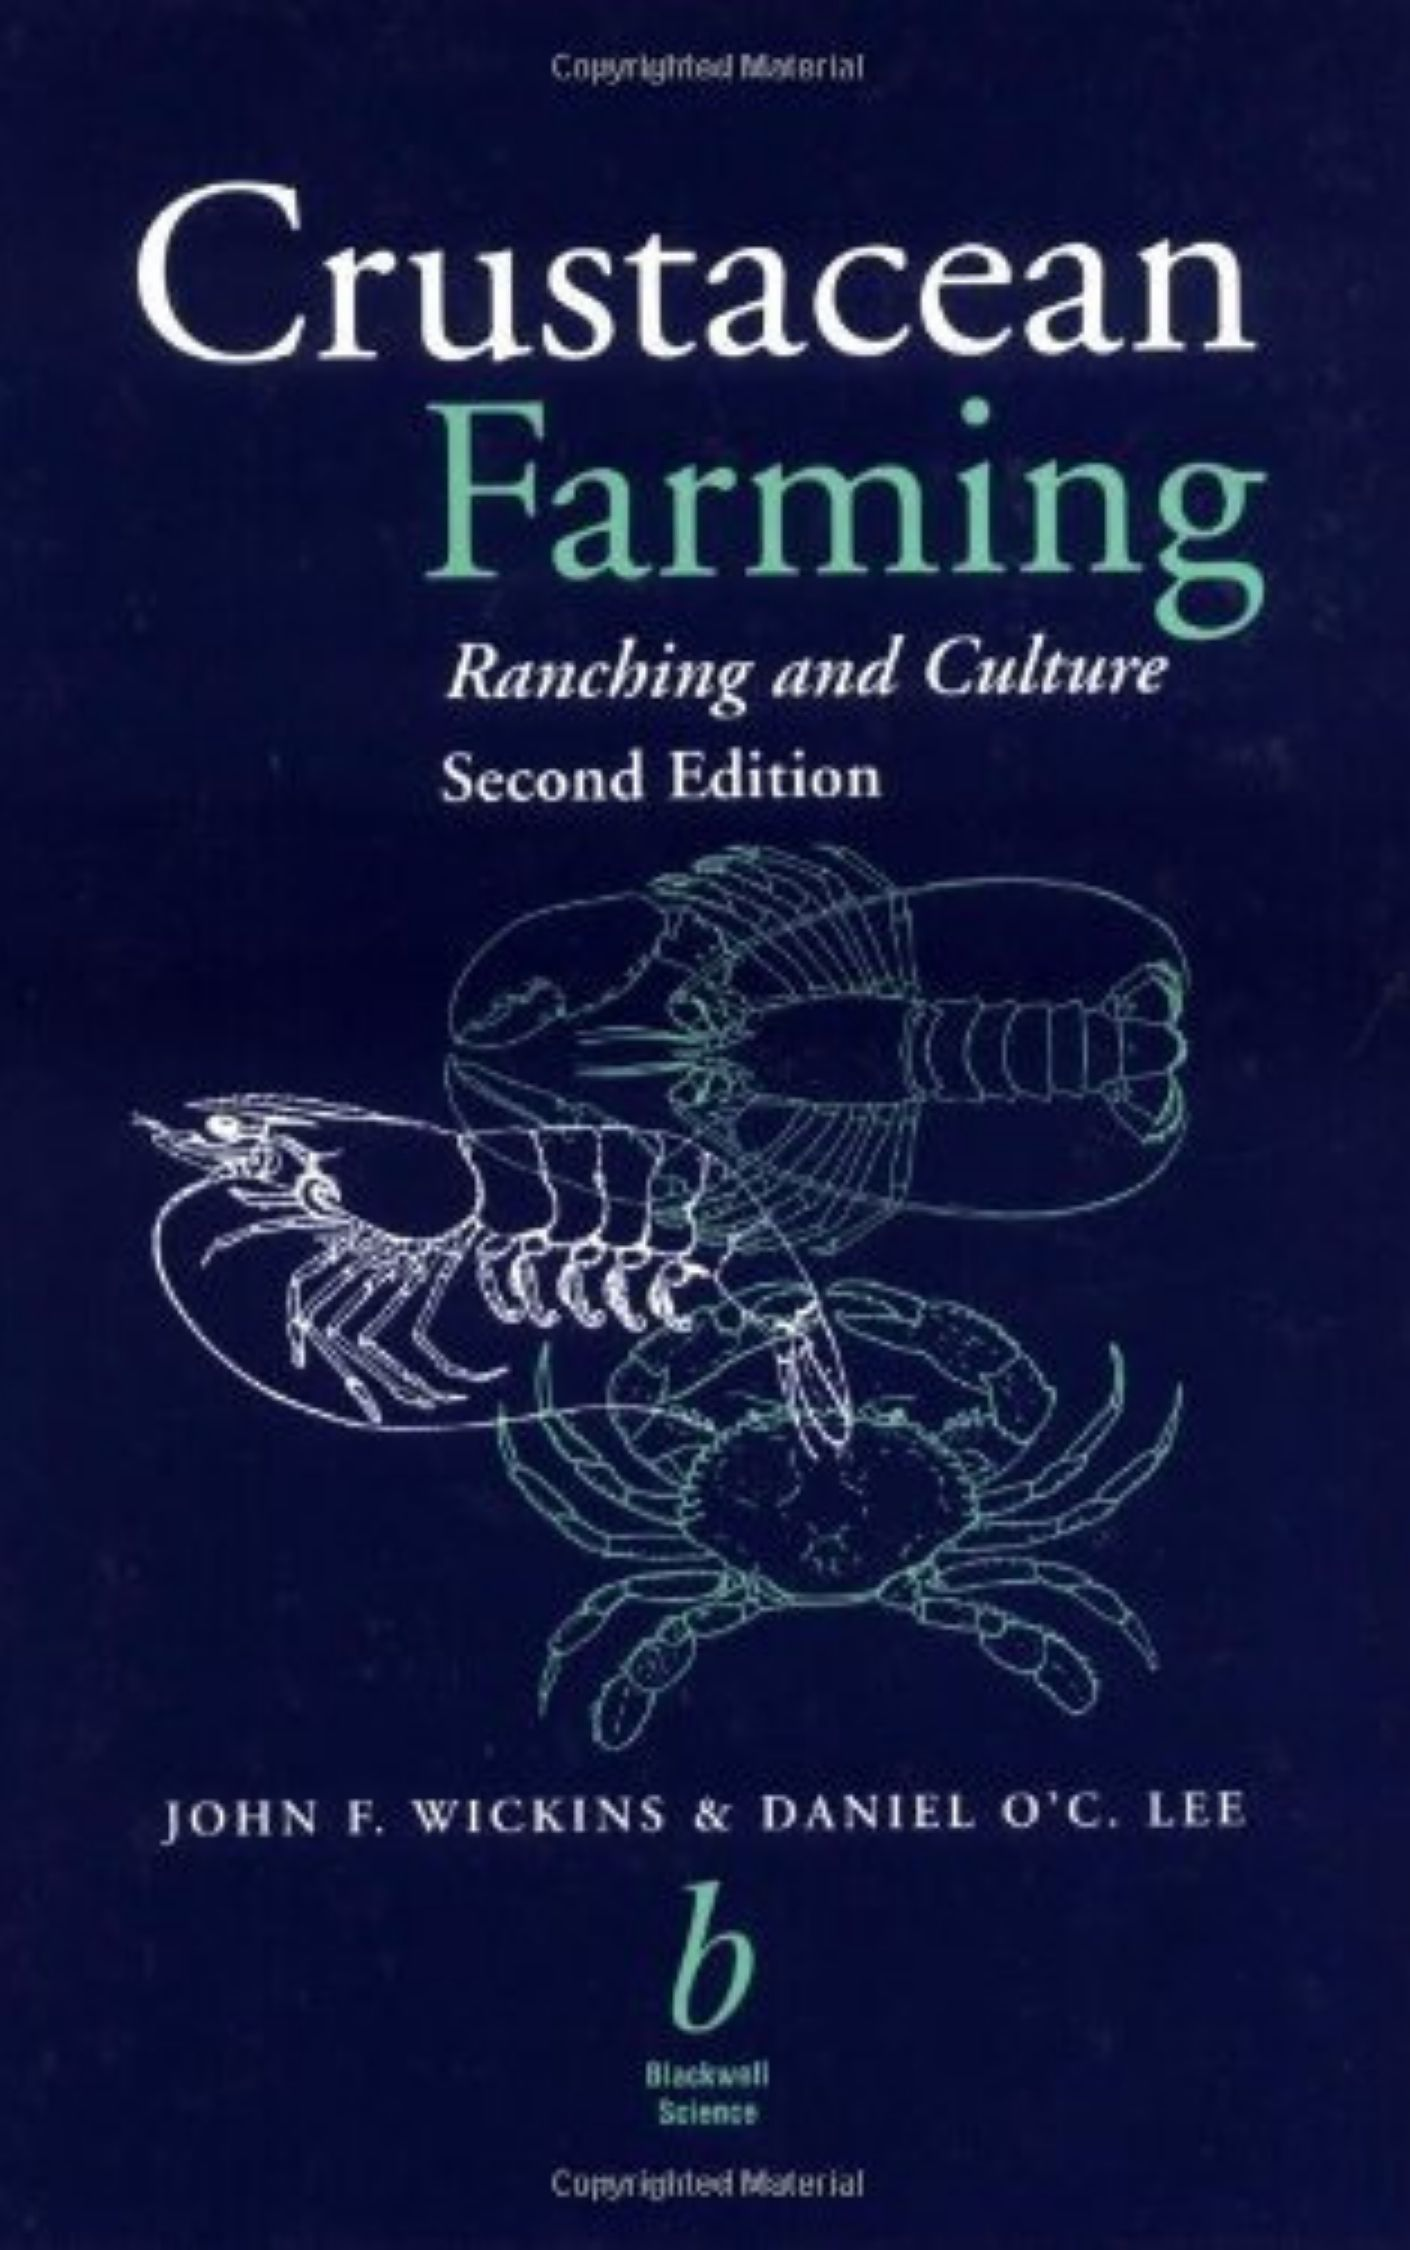 Crustacean Farming Ranching and Culture Second Edition by John F. Wickins